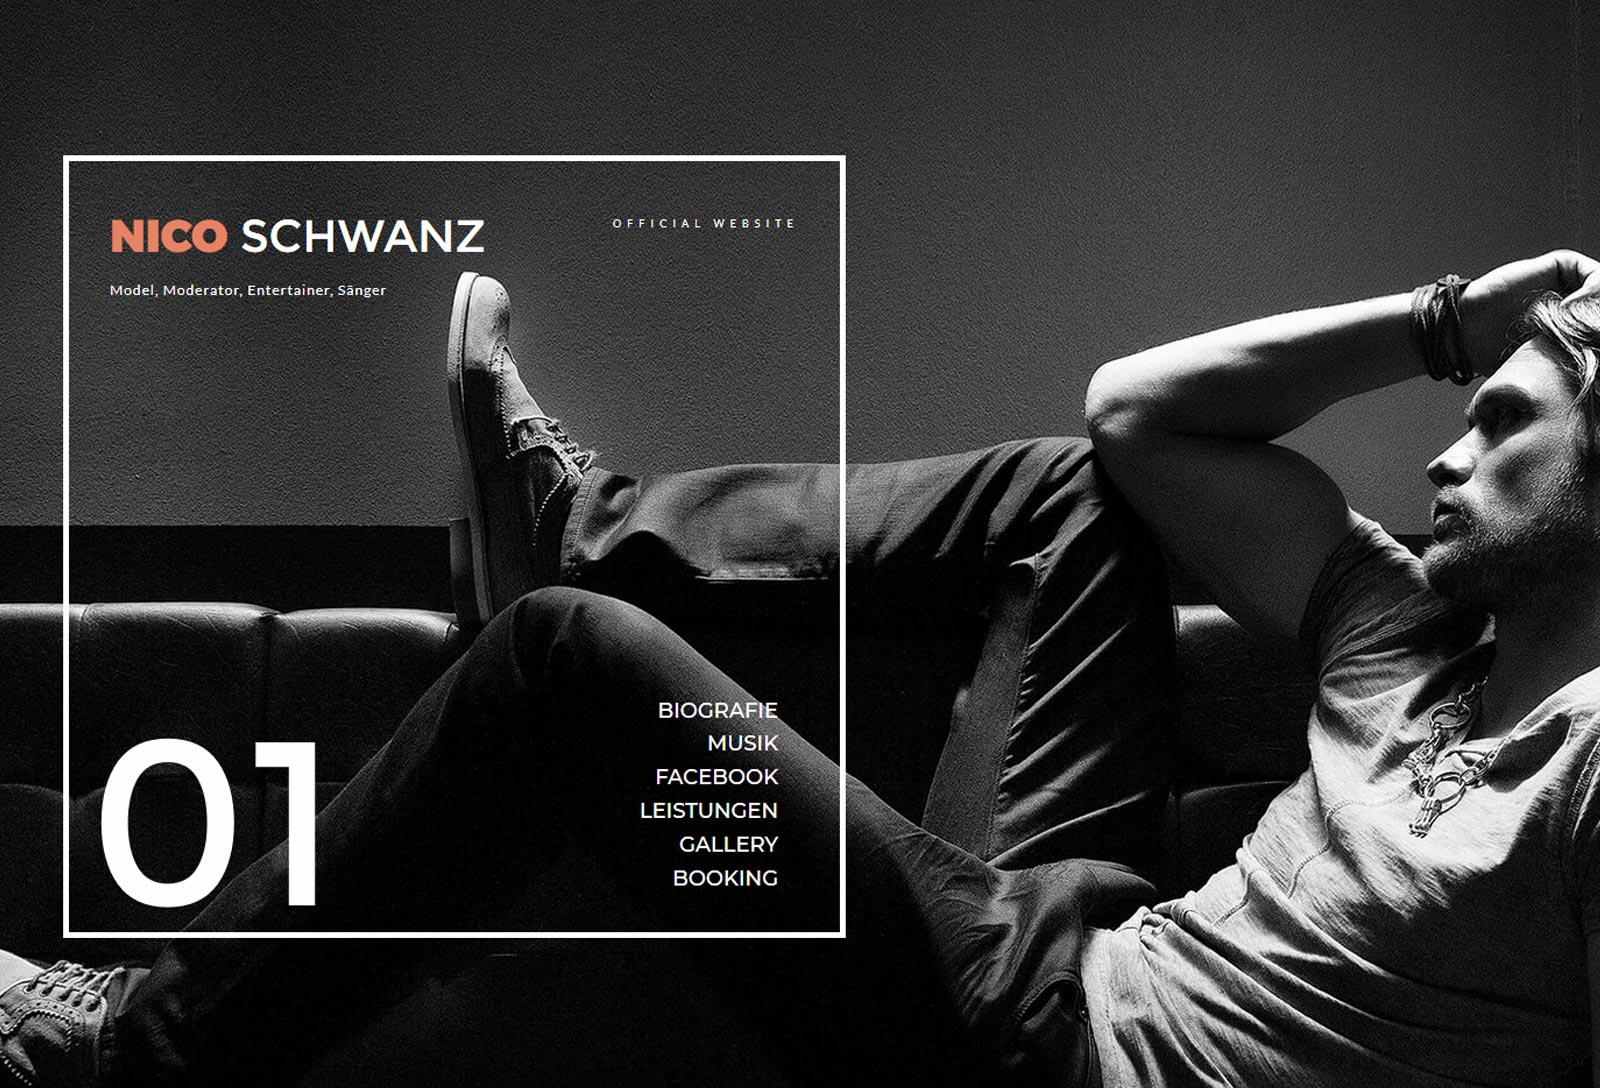 Nico Schwanz offical website von creon-media werbeagentur